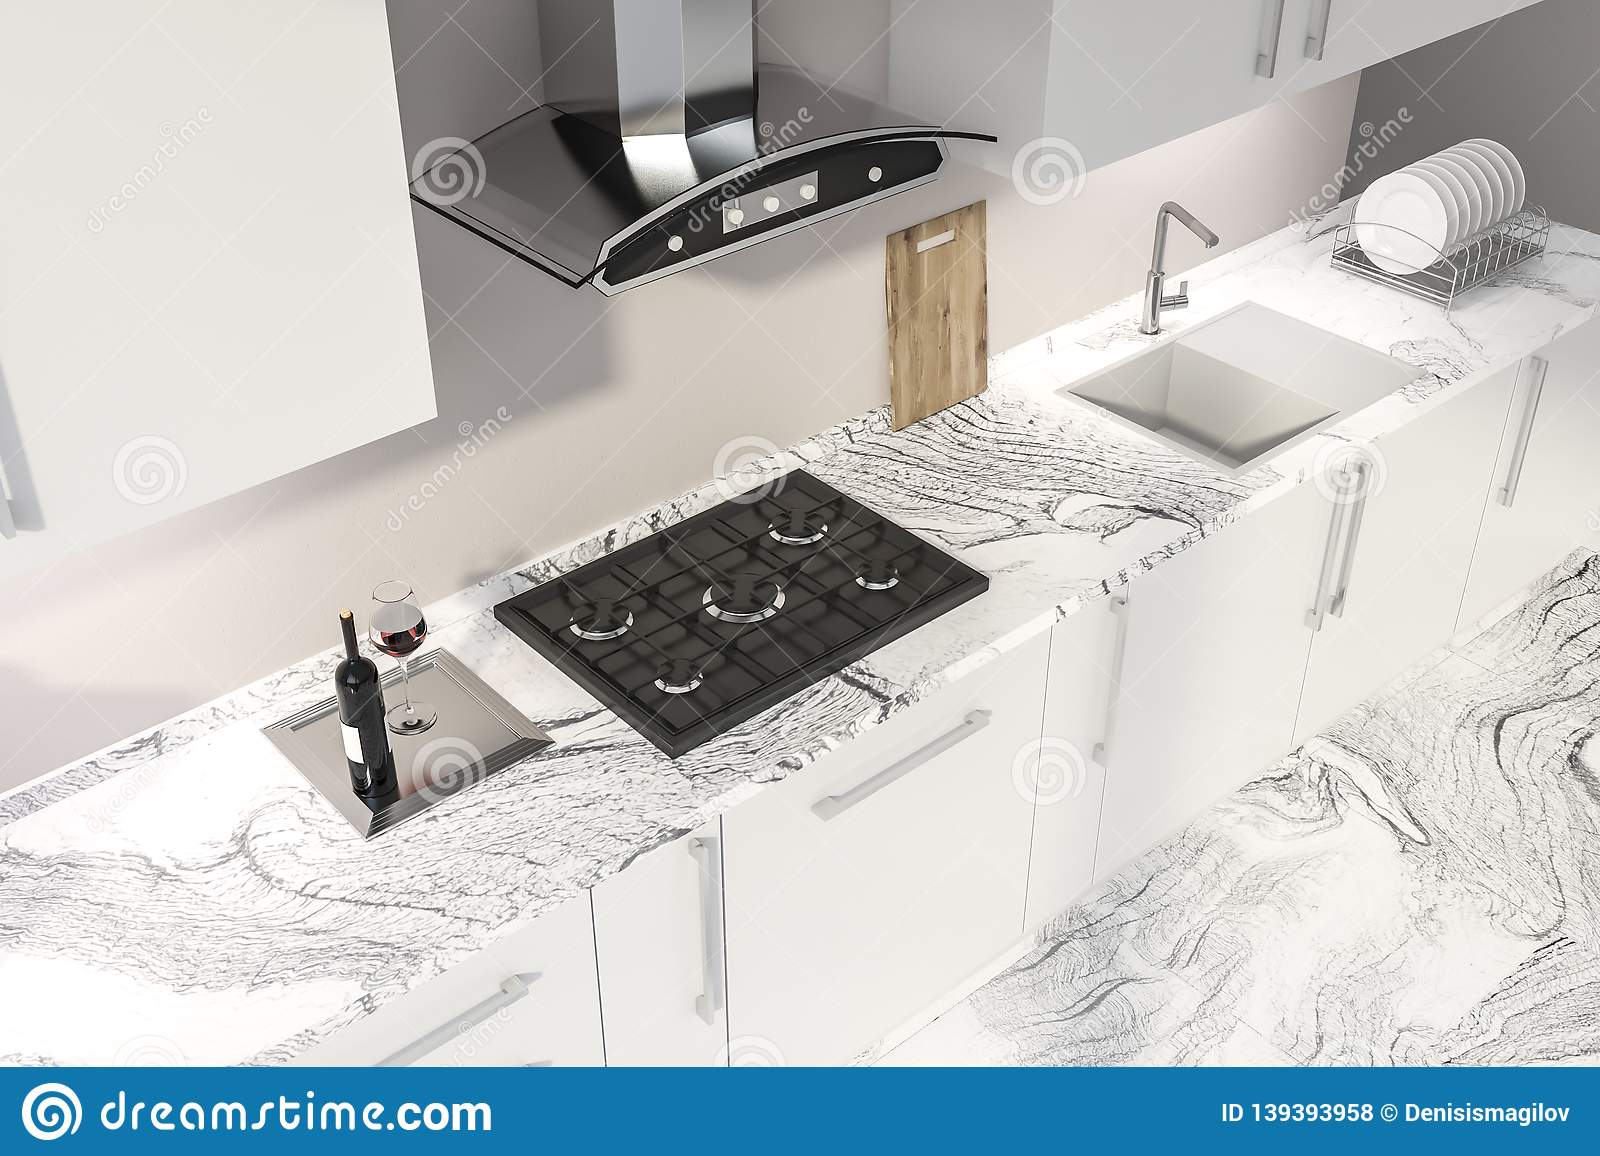 Top View Of Kitchen Countertop And Sink Stock Illustration ...